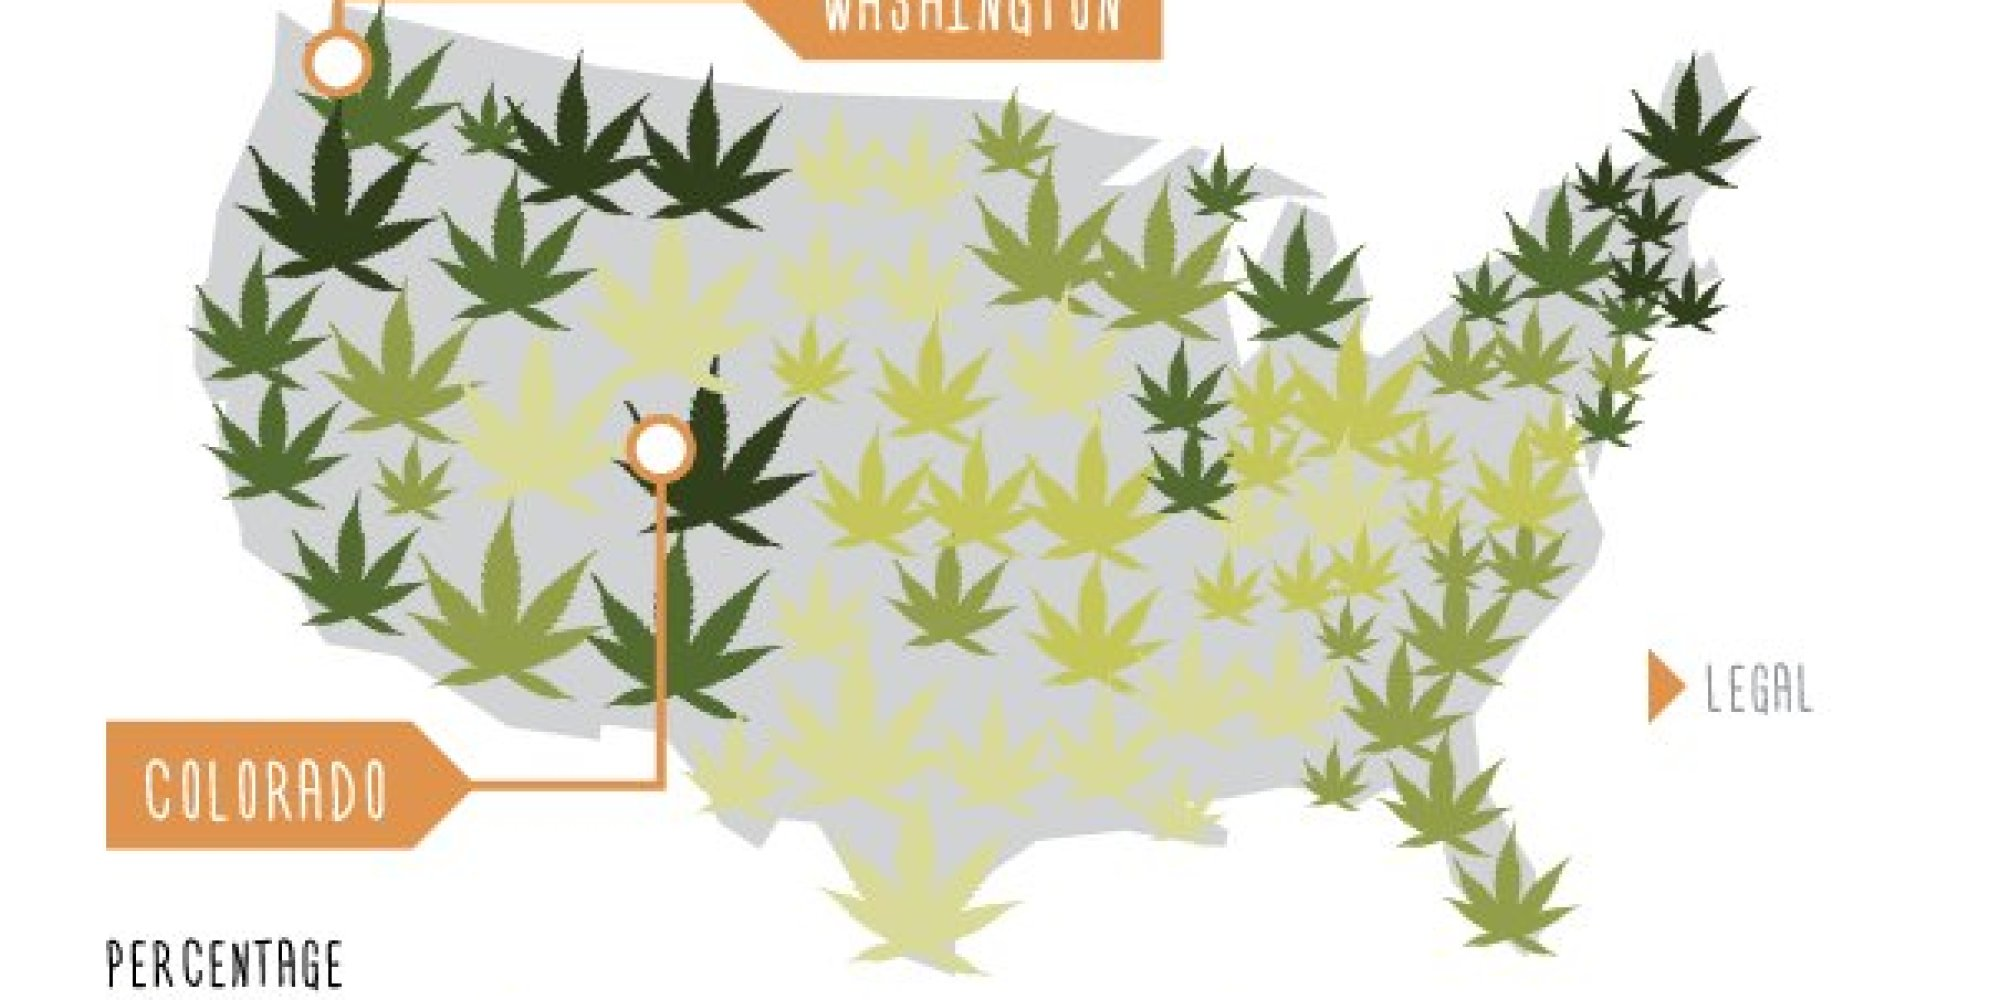 legalization as the solution to the problems of marijuana in the united states 2009/5/7 most other countries don't have that to nearly the extent that the united states does, they are a collectivist society,  jack, legalizing marijuana isn't the solution to any government's budget problem though taxing the sale of marijuana may raise some revenue.